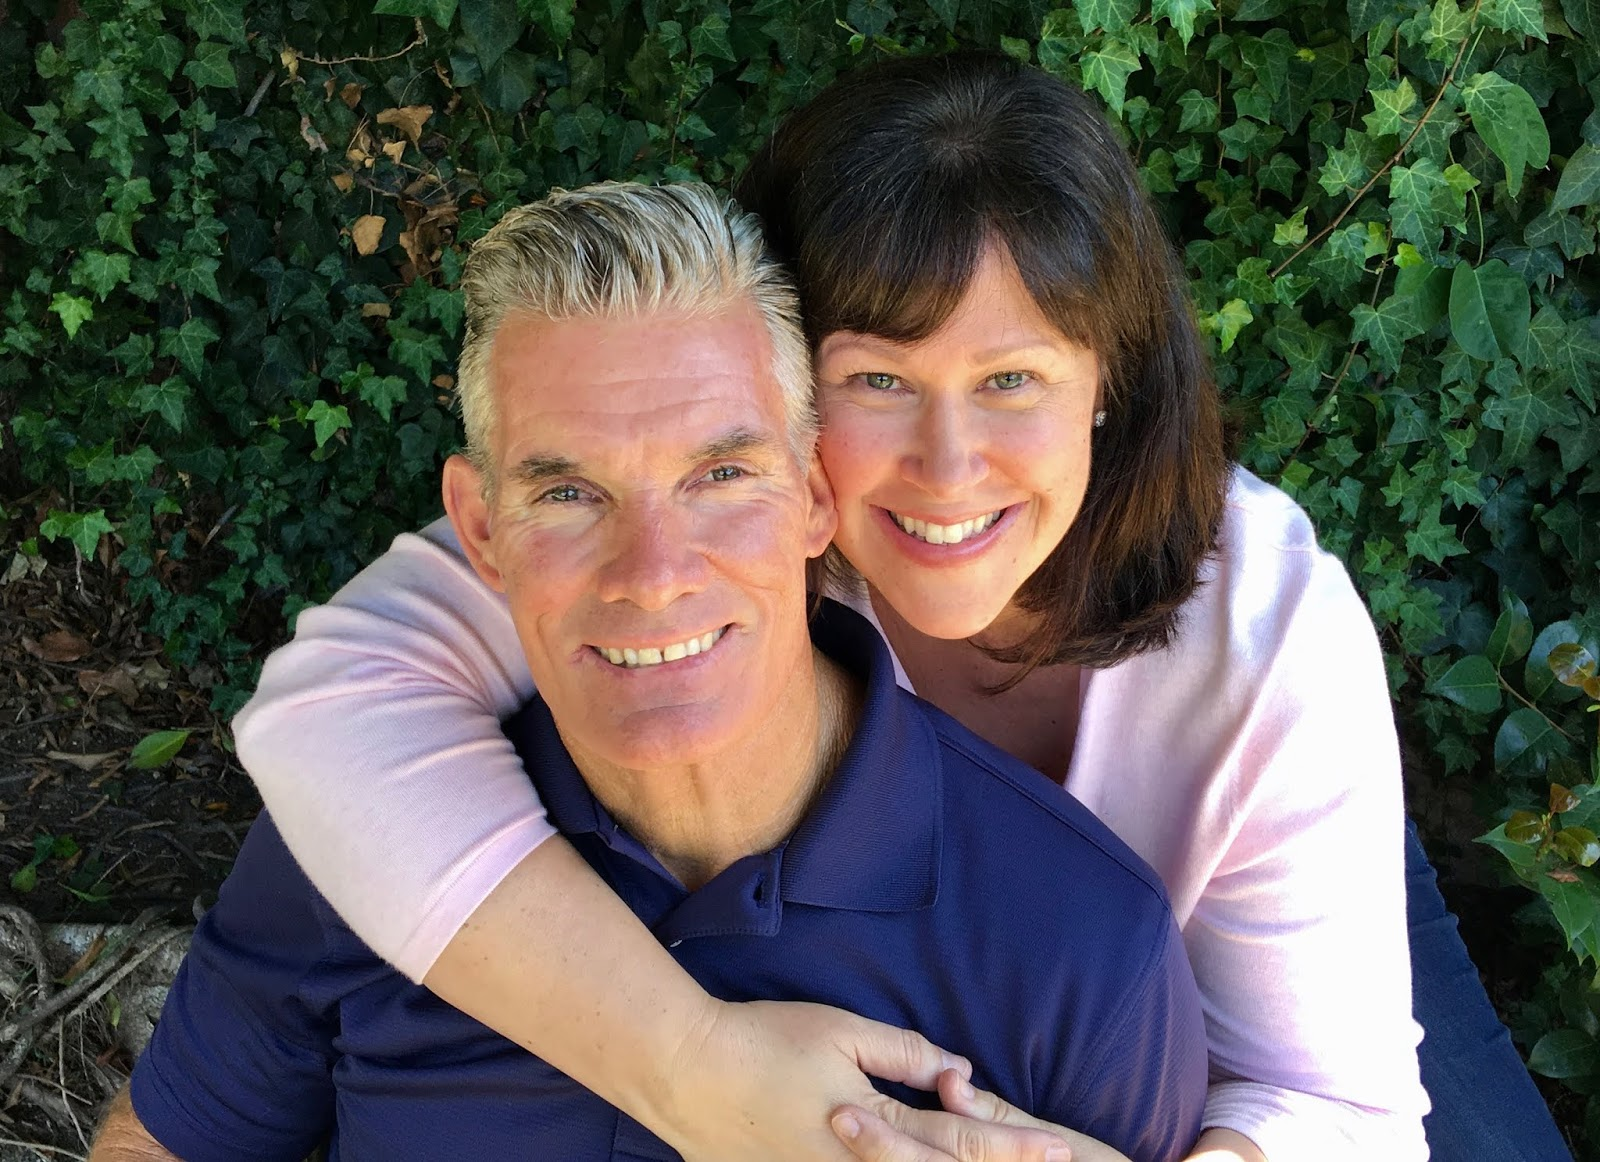 a heart surrendered: Celebrating 26 years of MARRIAGE!